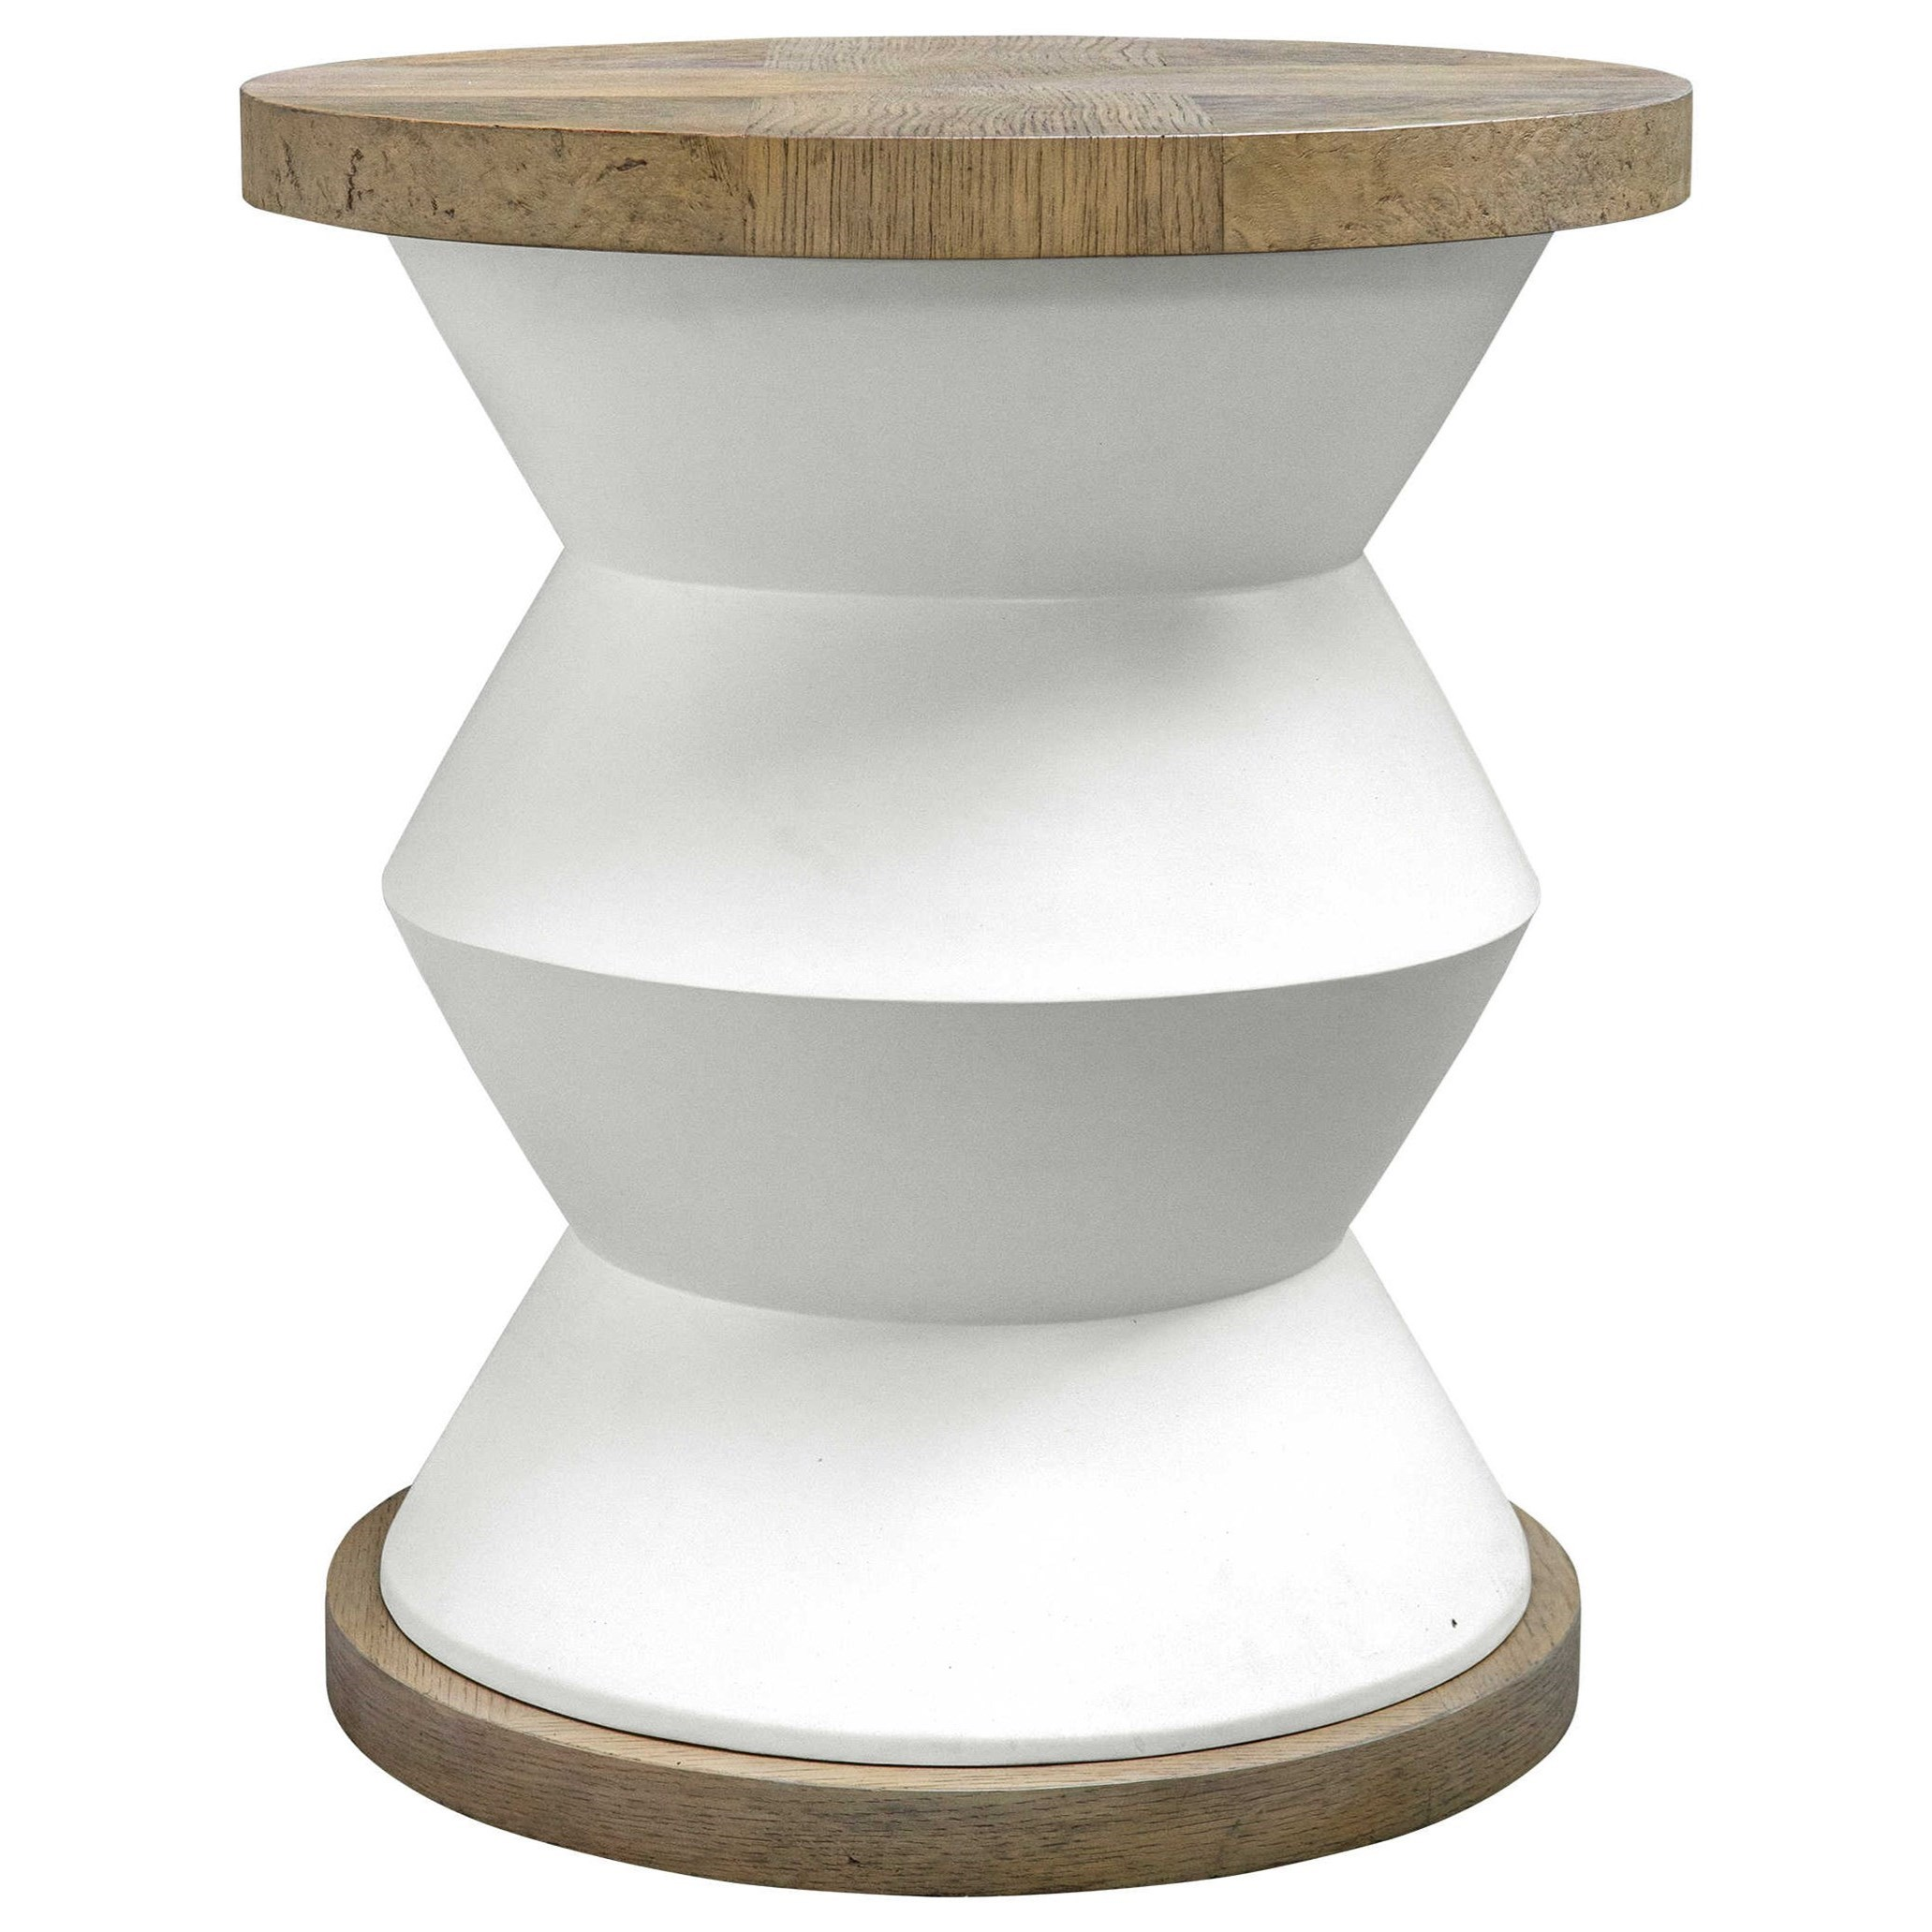 Accent Furniture - Occasional Tables Spool Geometric Side Table by Uttermost at Upper Room Home Furnishings